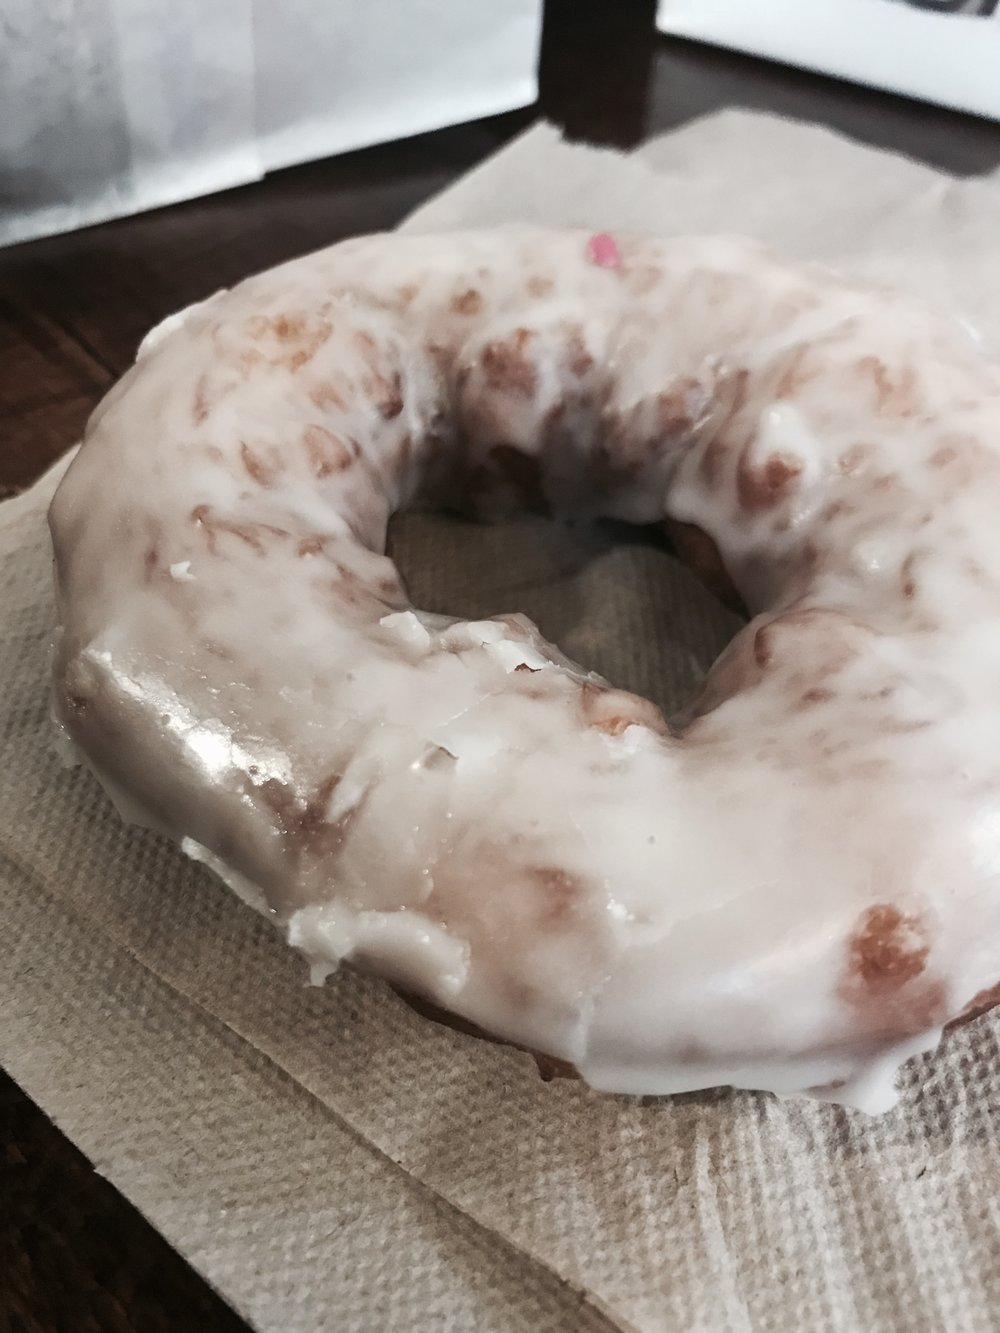 This is the lemon donut. I also tried the pomegranate and chocolate glazed (no shame), which were equally delicious!